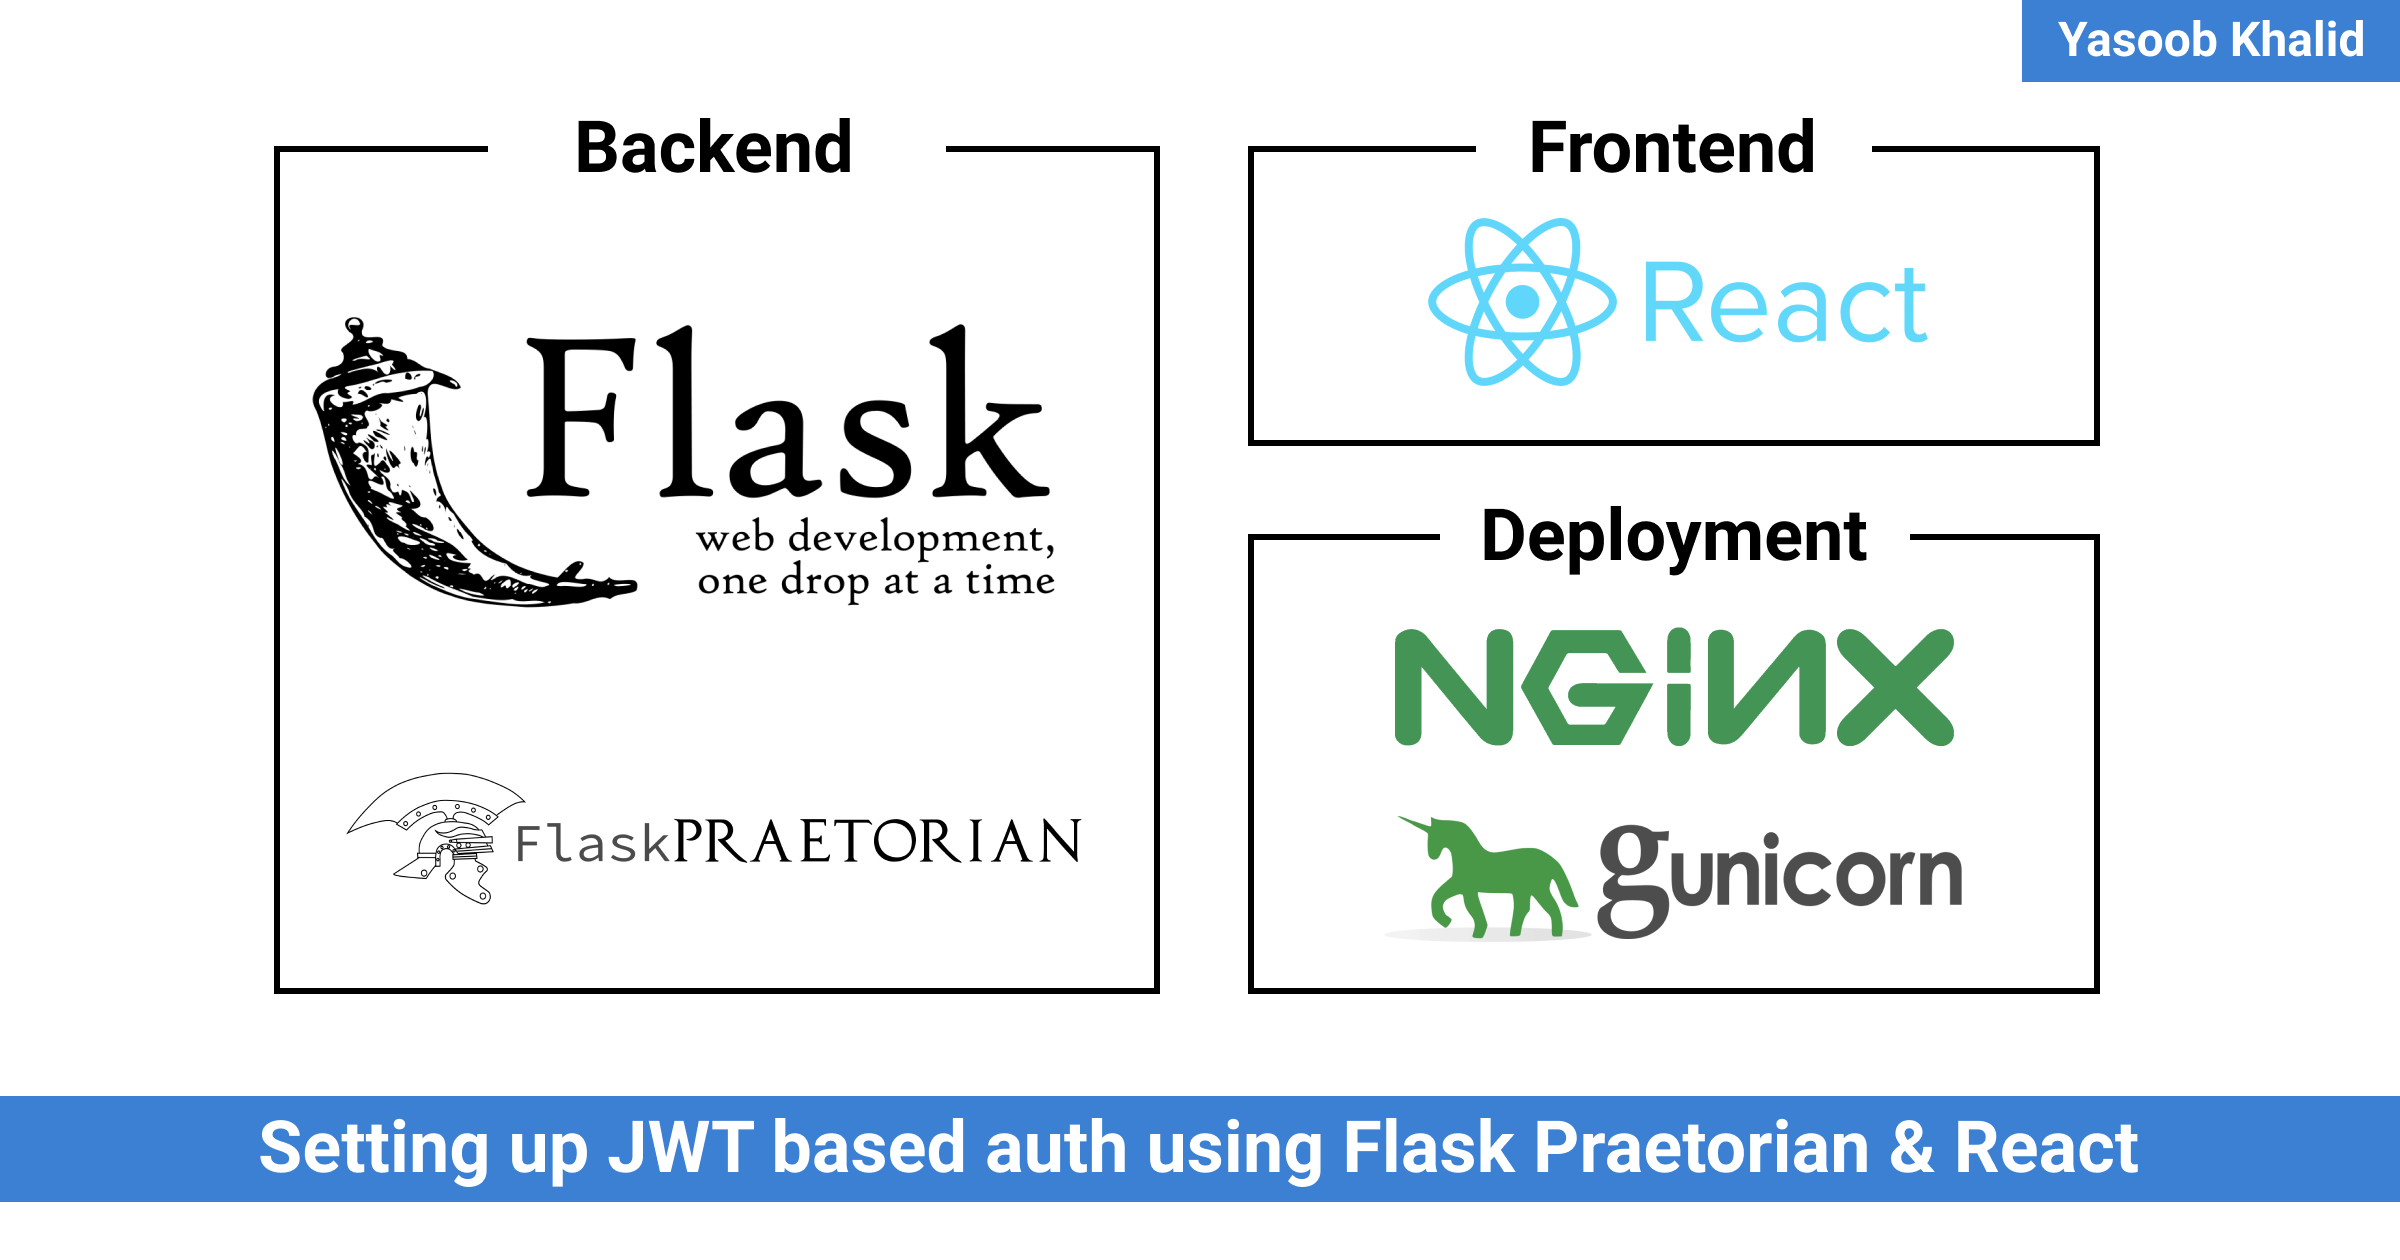 Setting up & Deploying JWT based auth using Flask & React